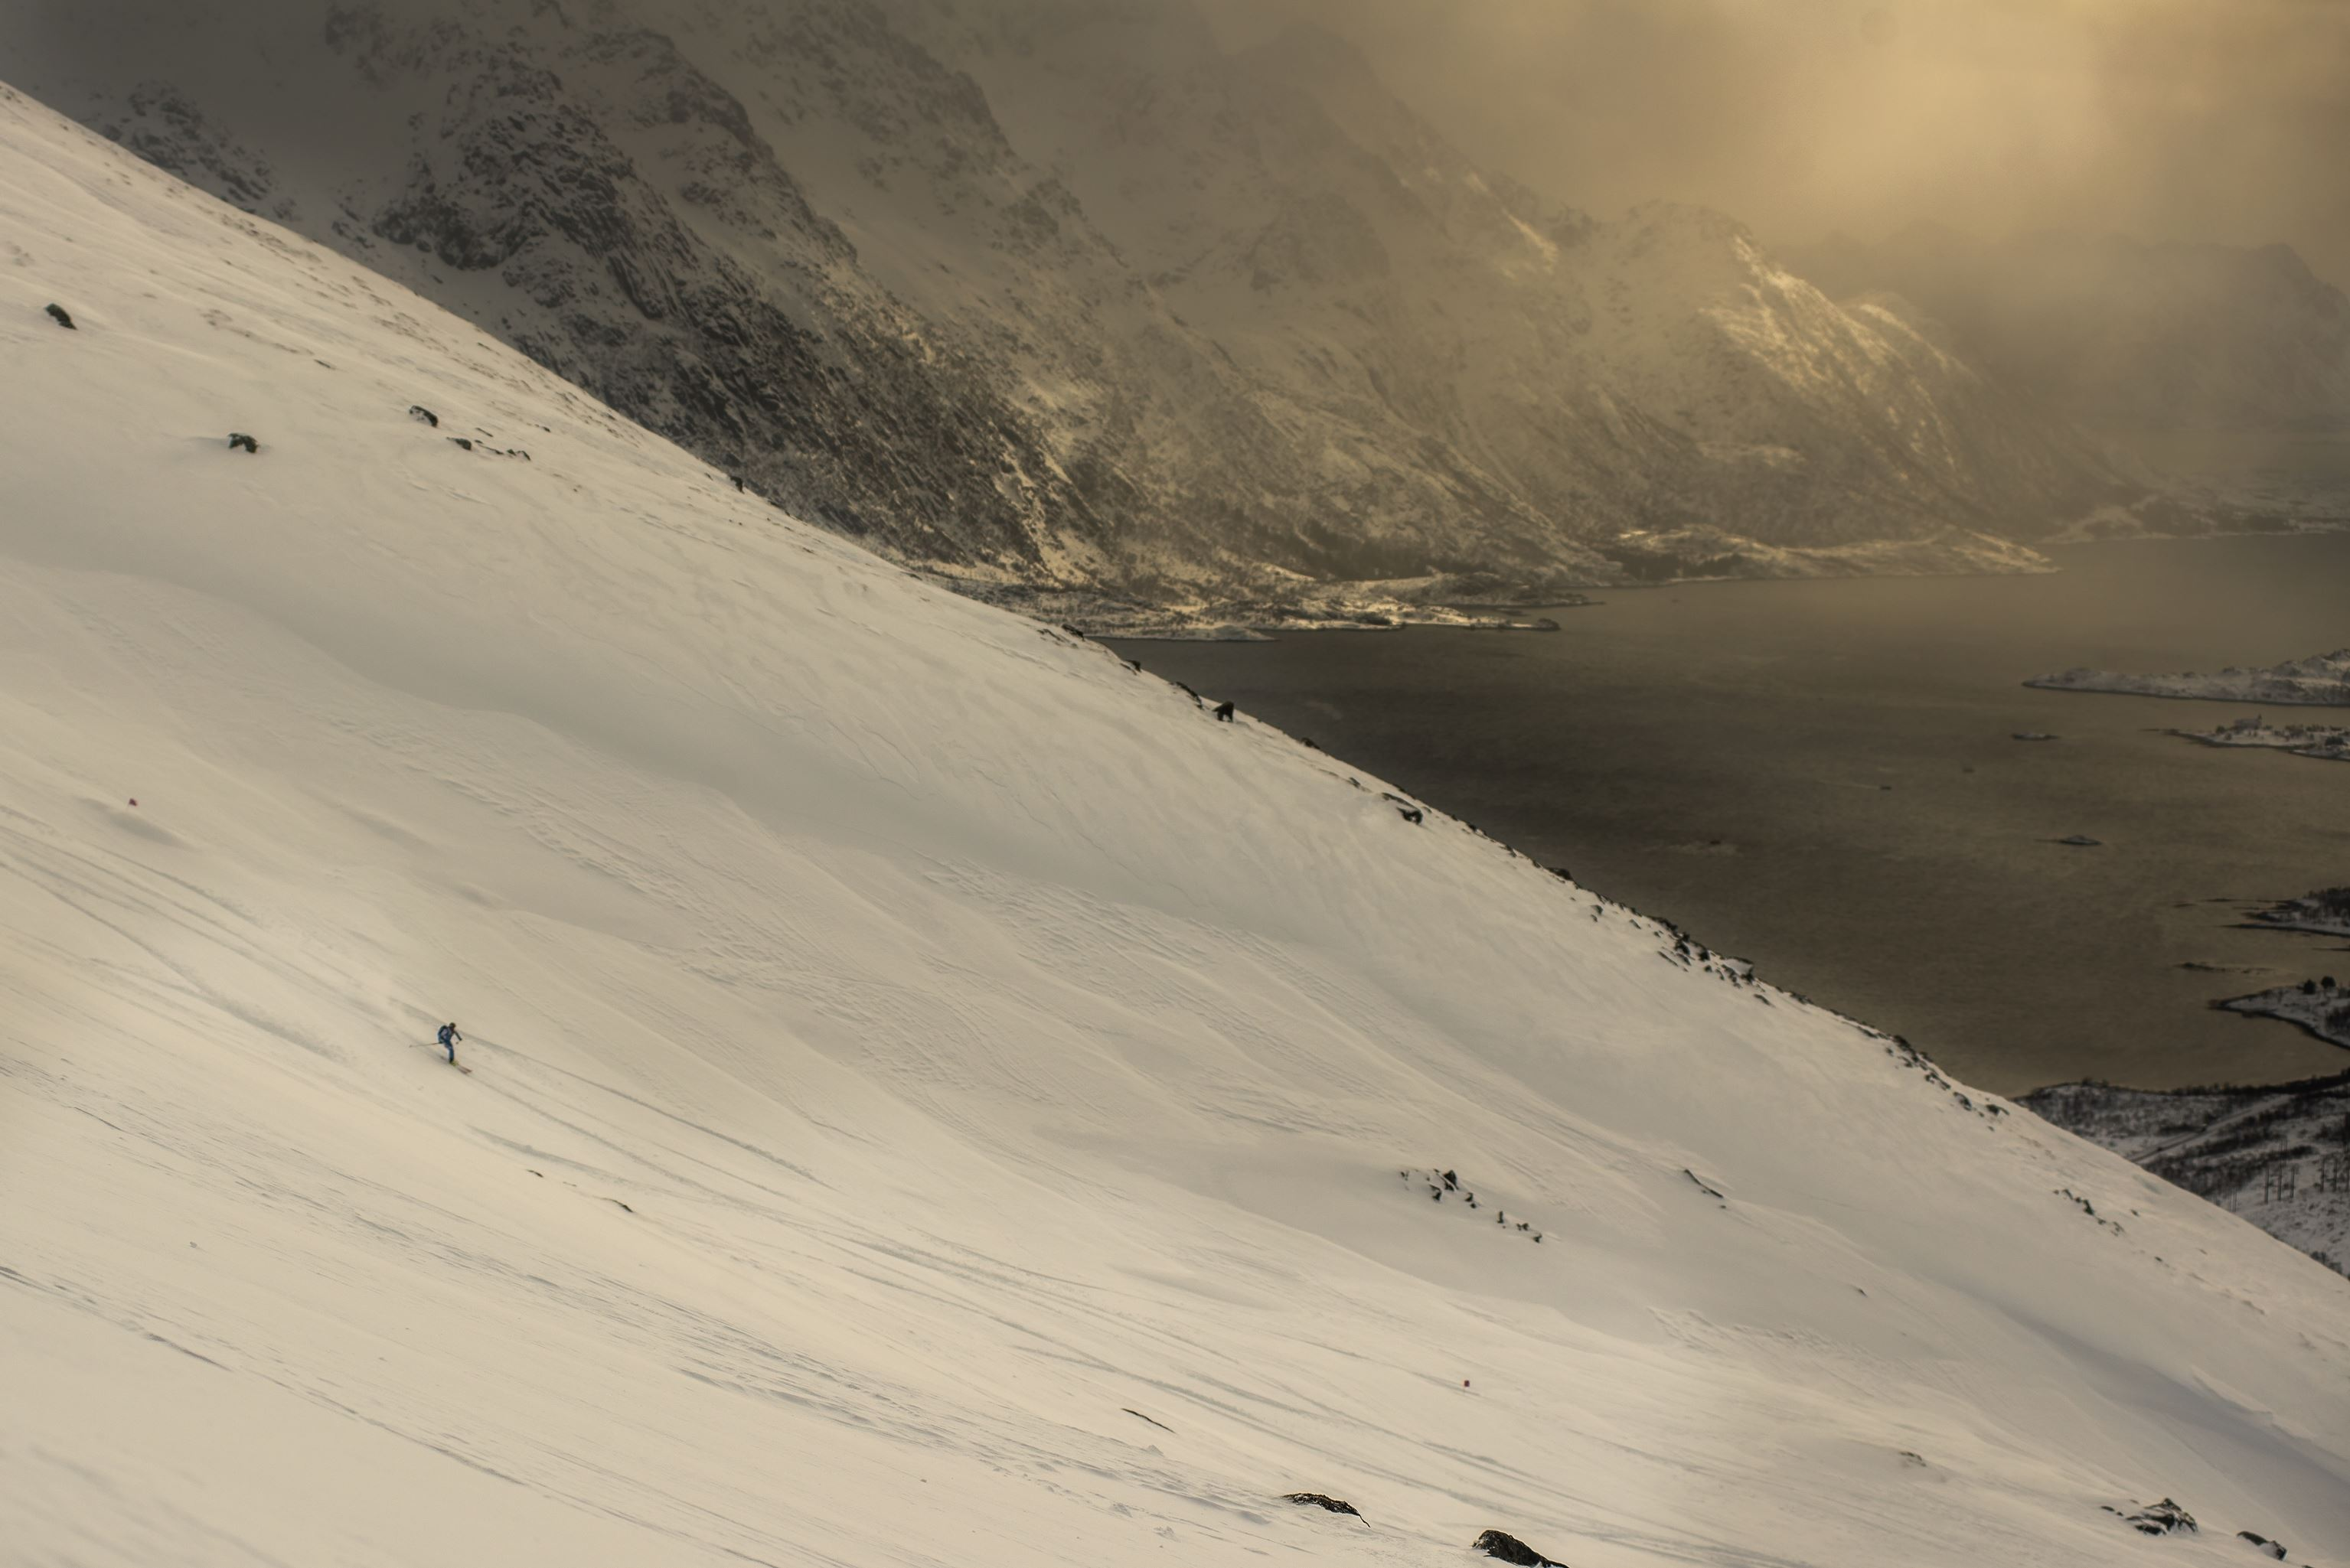 © Kai-Otto Melau / www.thearctictriple.com, Lofoten Skimo 1000+ // The Arctic Triple